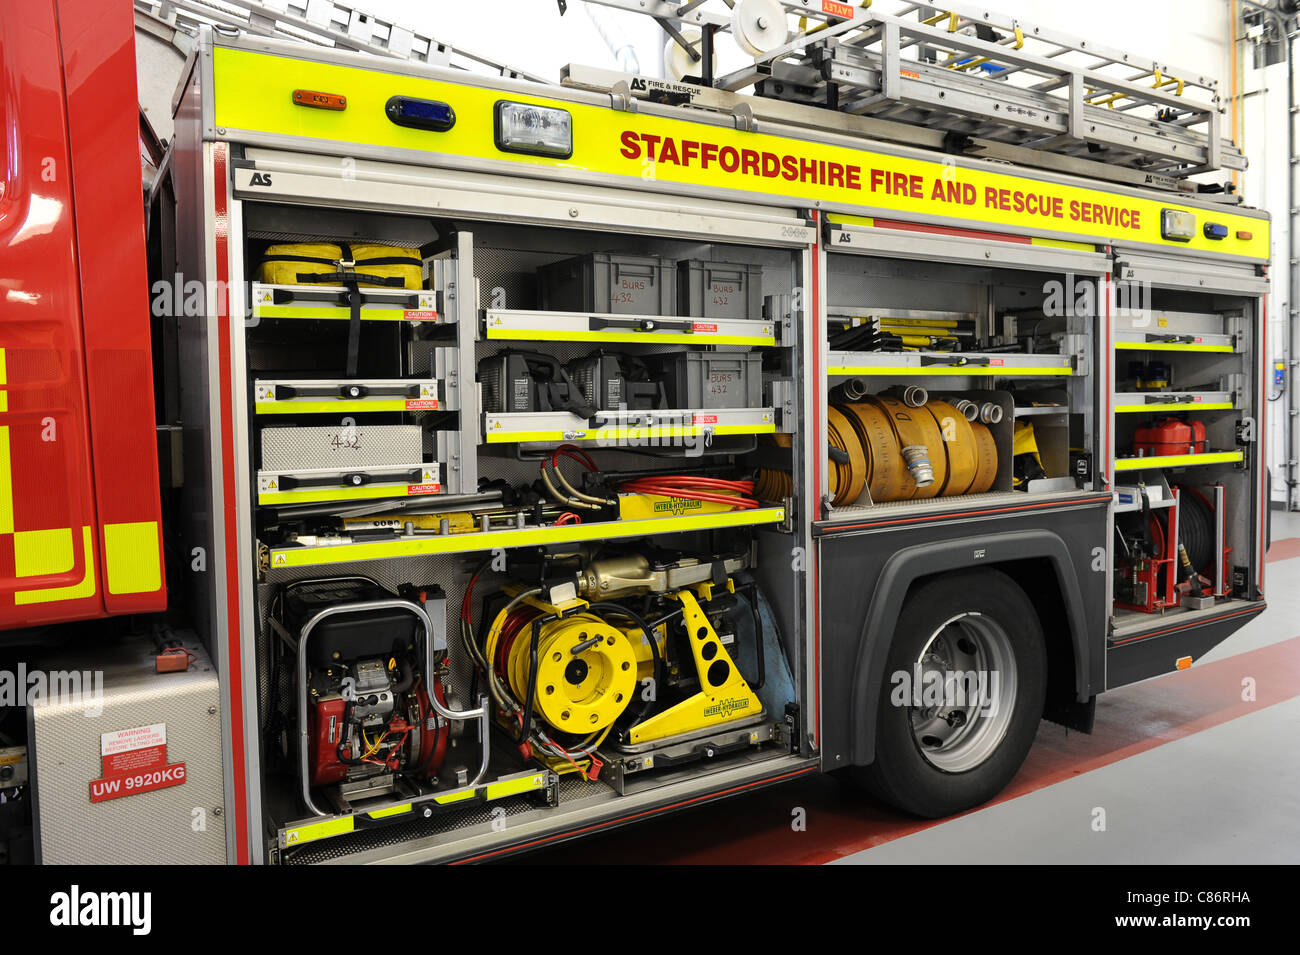 Staffordshire Fire Service fire appliance equipment England Uk - Stock Image